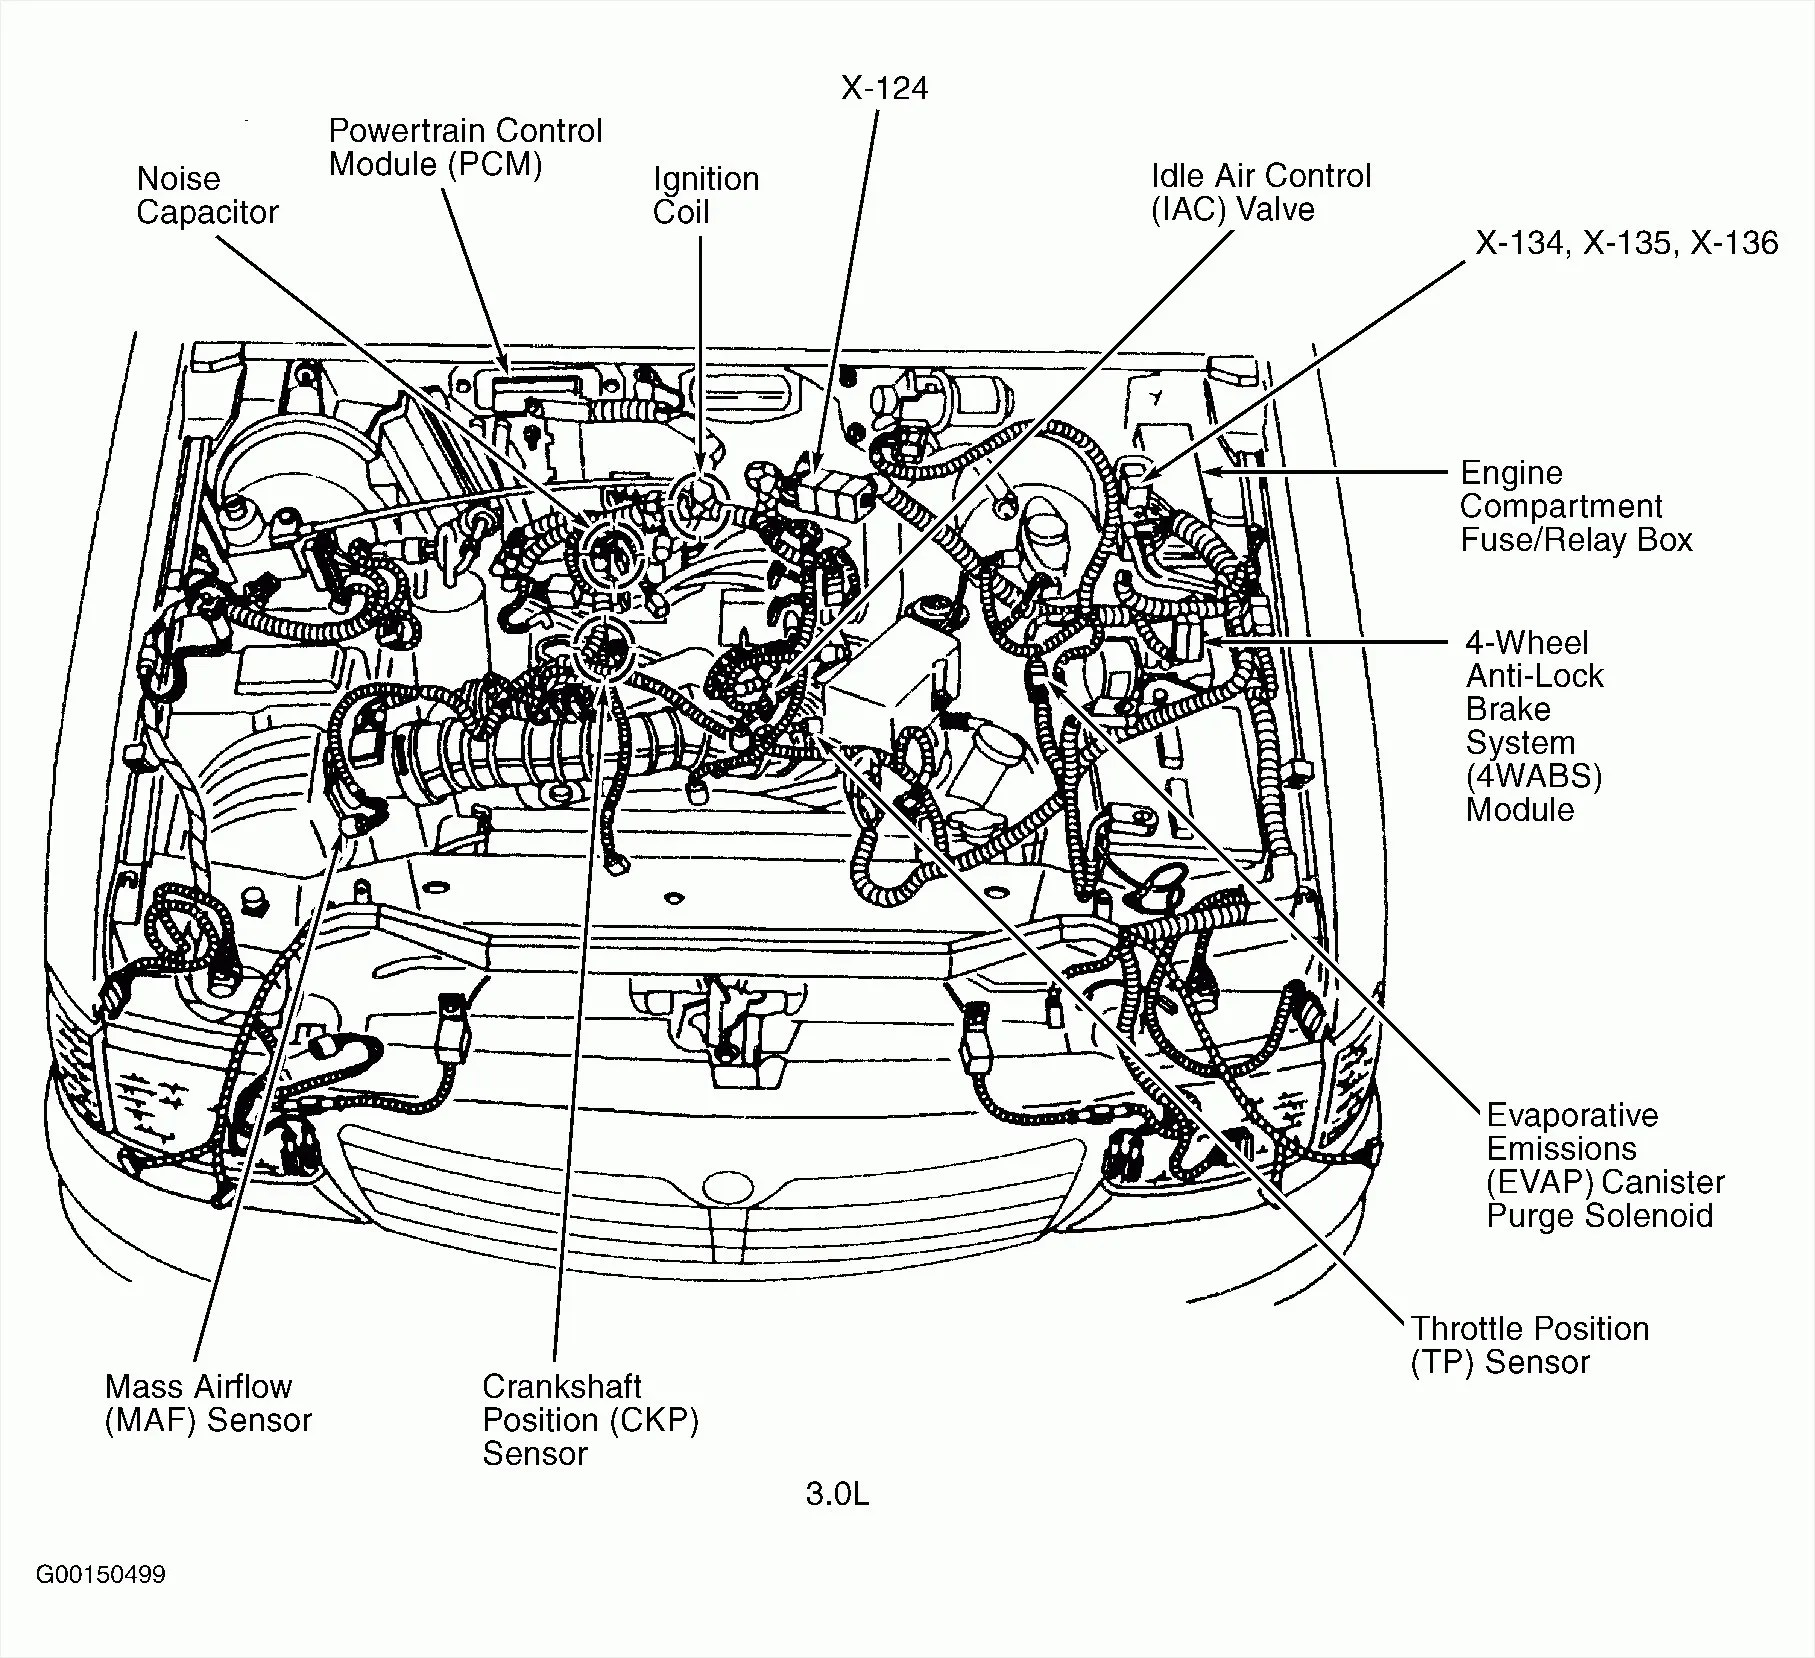 hight resolution of 2003 toyota tundra engine compartment diagram wiring diagram query 2000 grand am engine diagram wiring diagrams